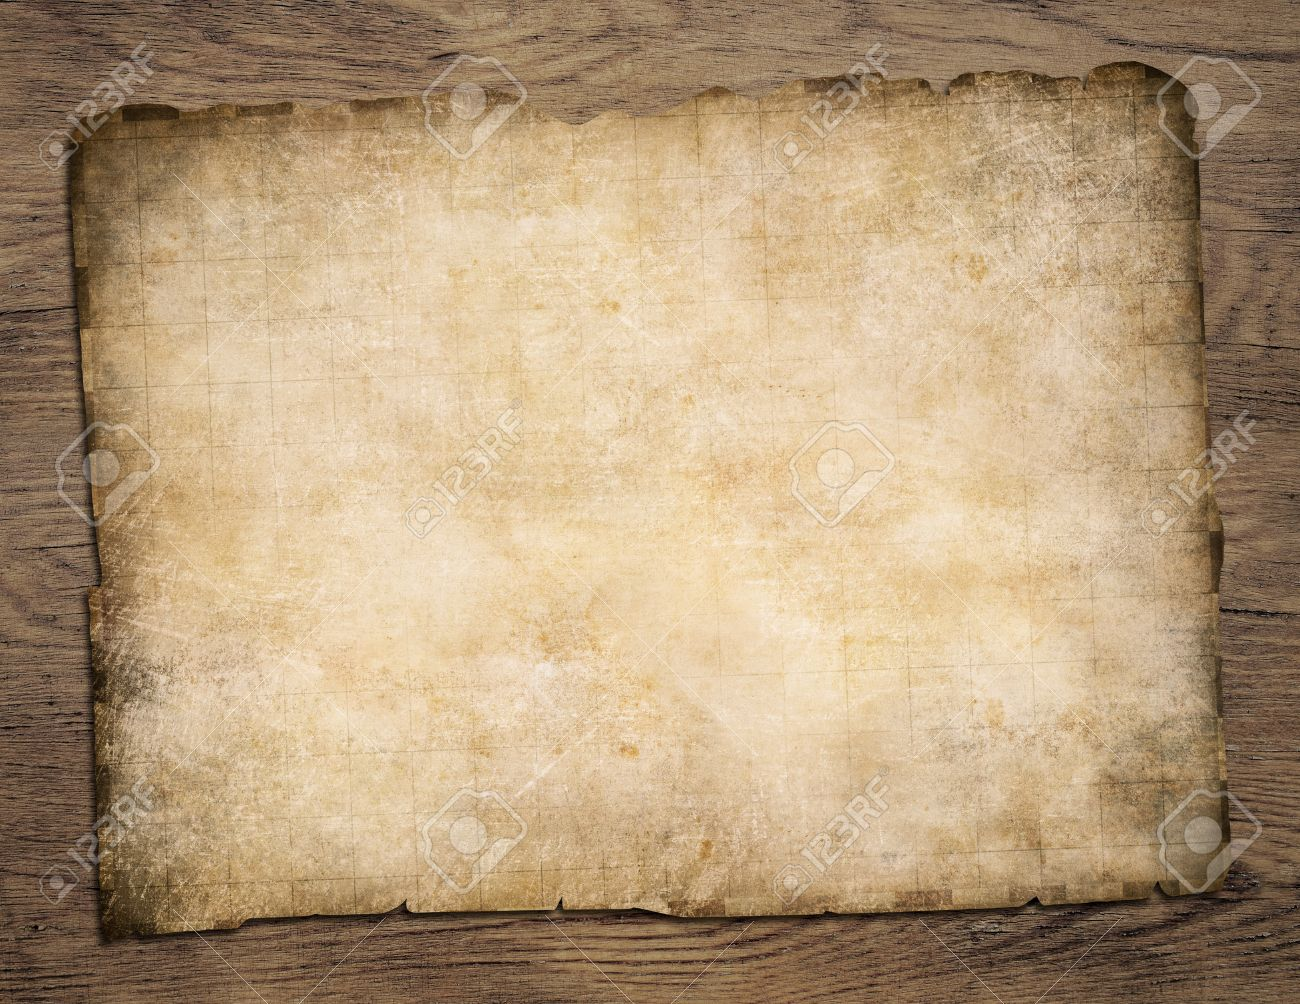 Old Blank Parchment Treasure Map On Wooden Table Stock Photo